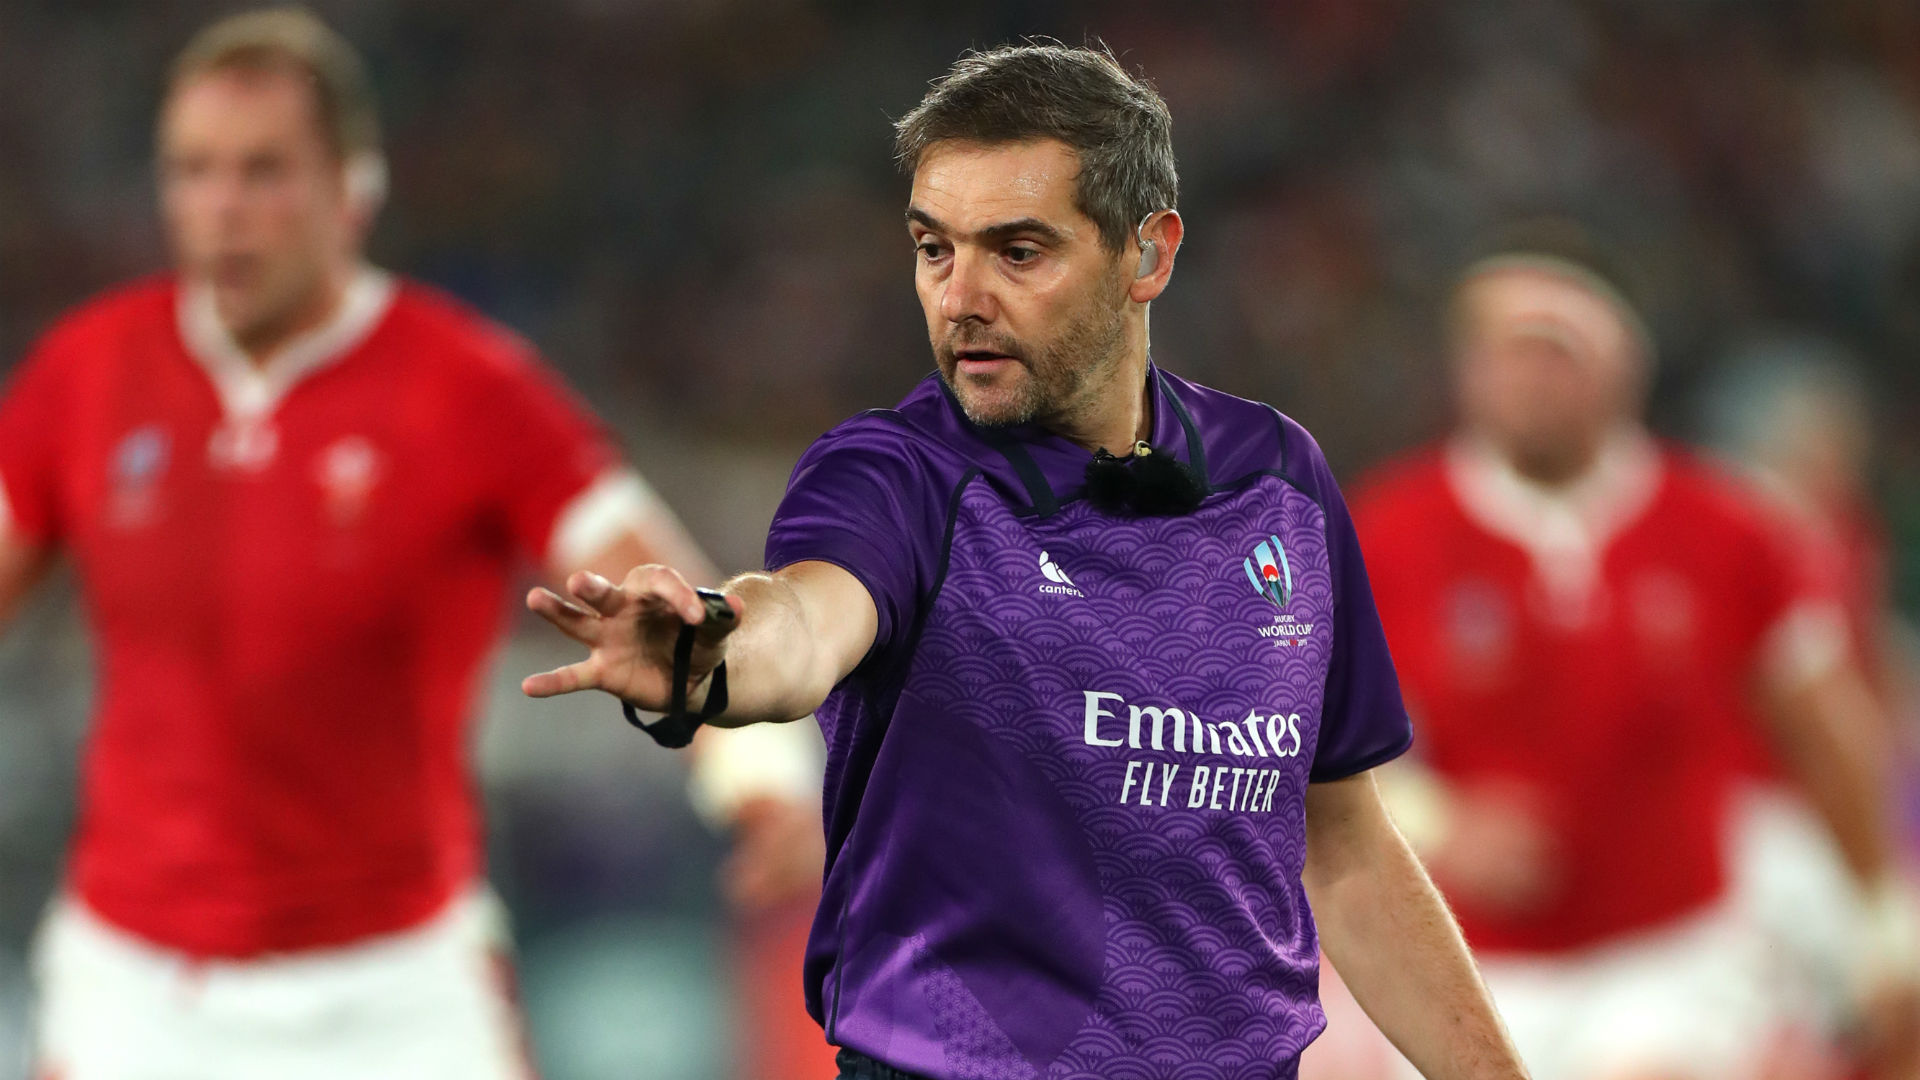 Rugby World Cup 2019: Jerome Garces to ref England-South Africa final